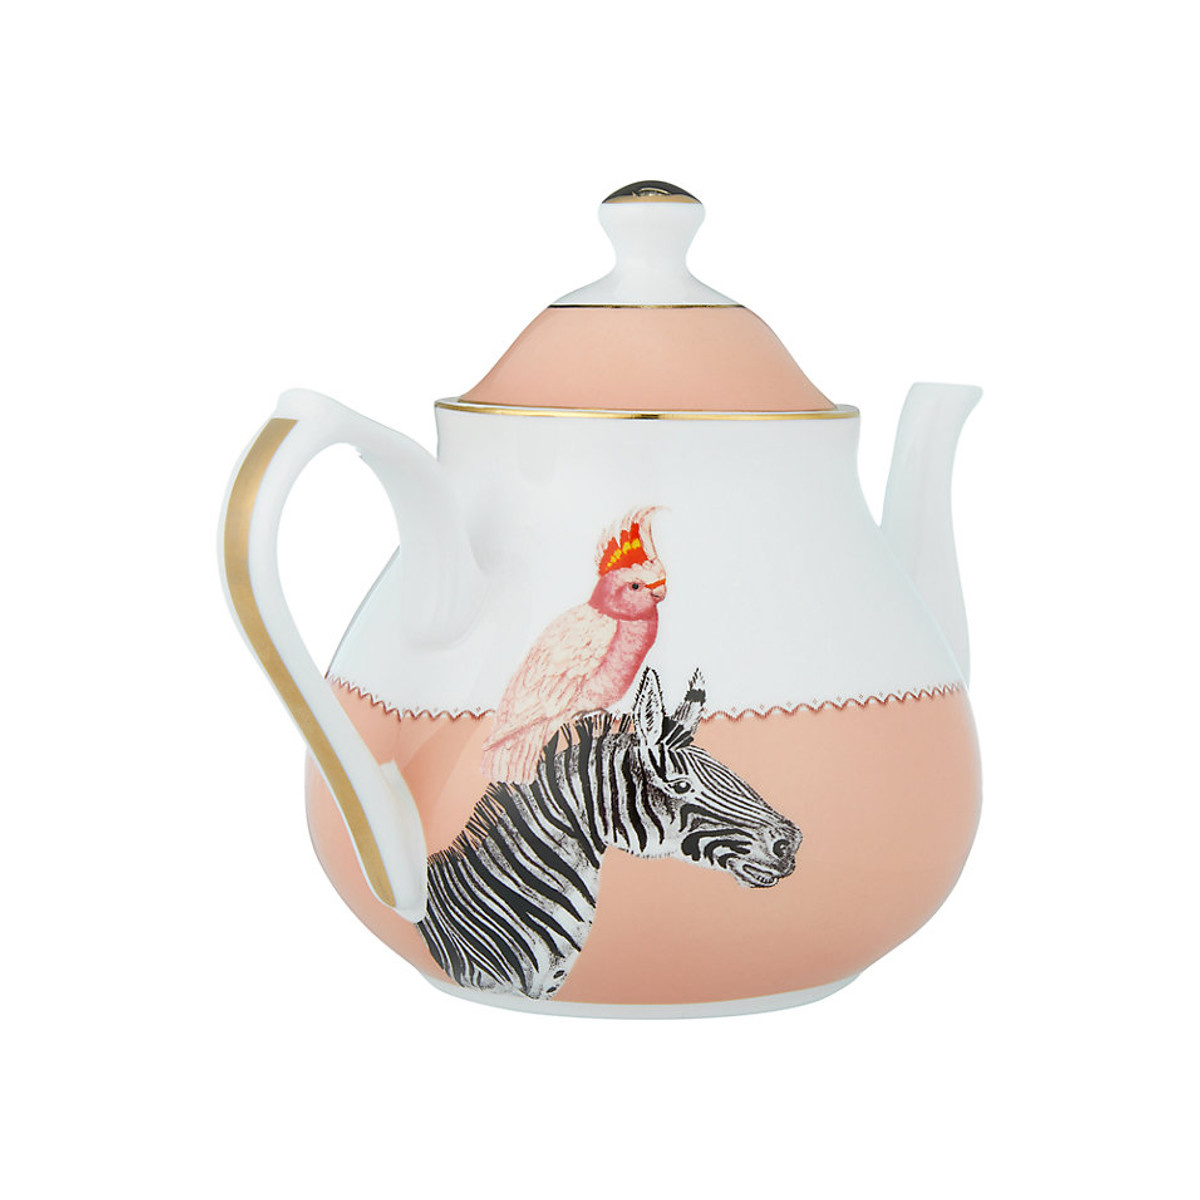 Yvonne Ellen London Yvonne Ellen - Carnival Animal Theepot 1,6 Liter - Zebra Print - Bone China Porselein - In Fraaie Geschenkdoos